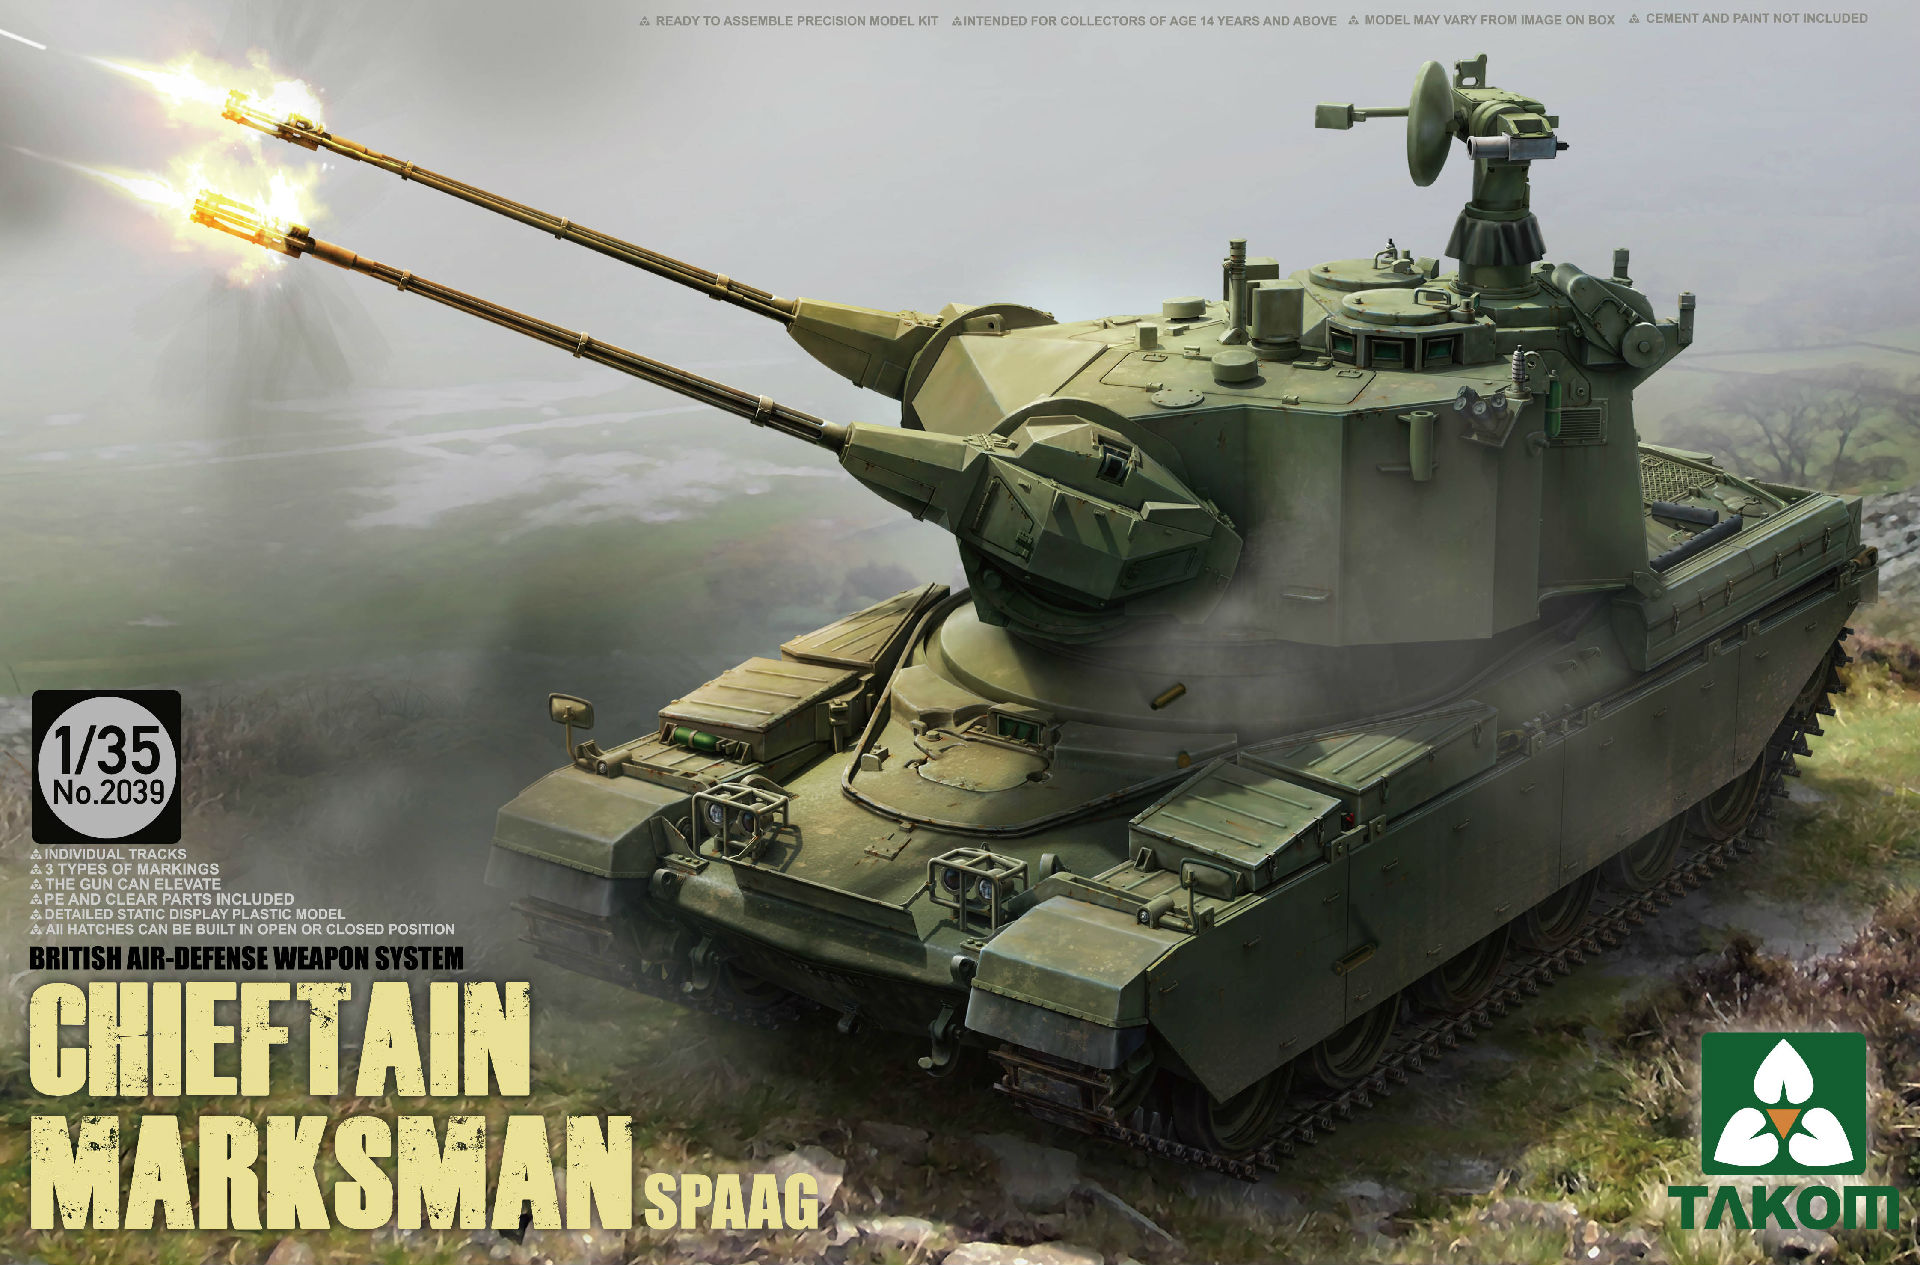 British Air-defense Weapon System Chieftain Marksman SPAAG